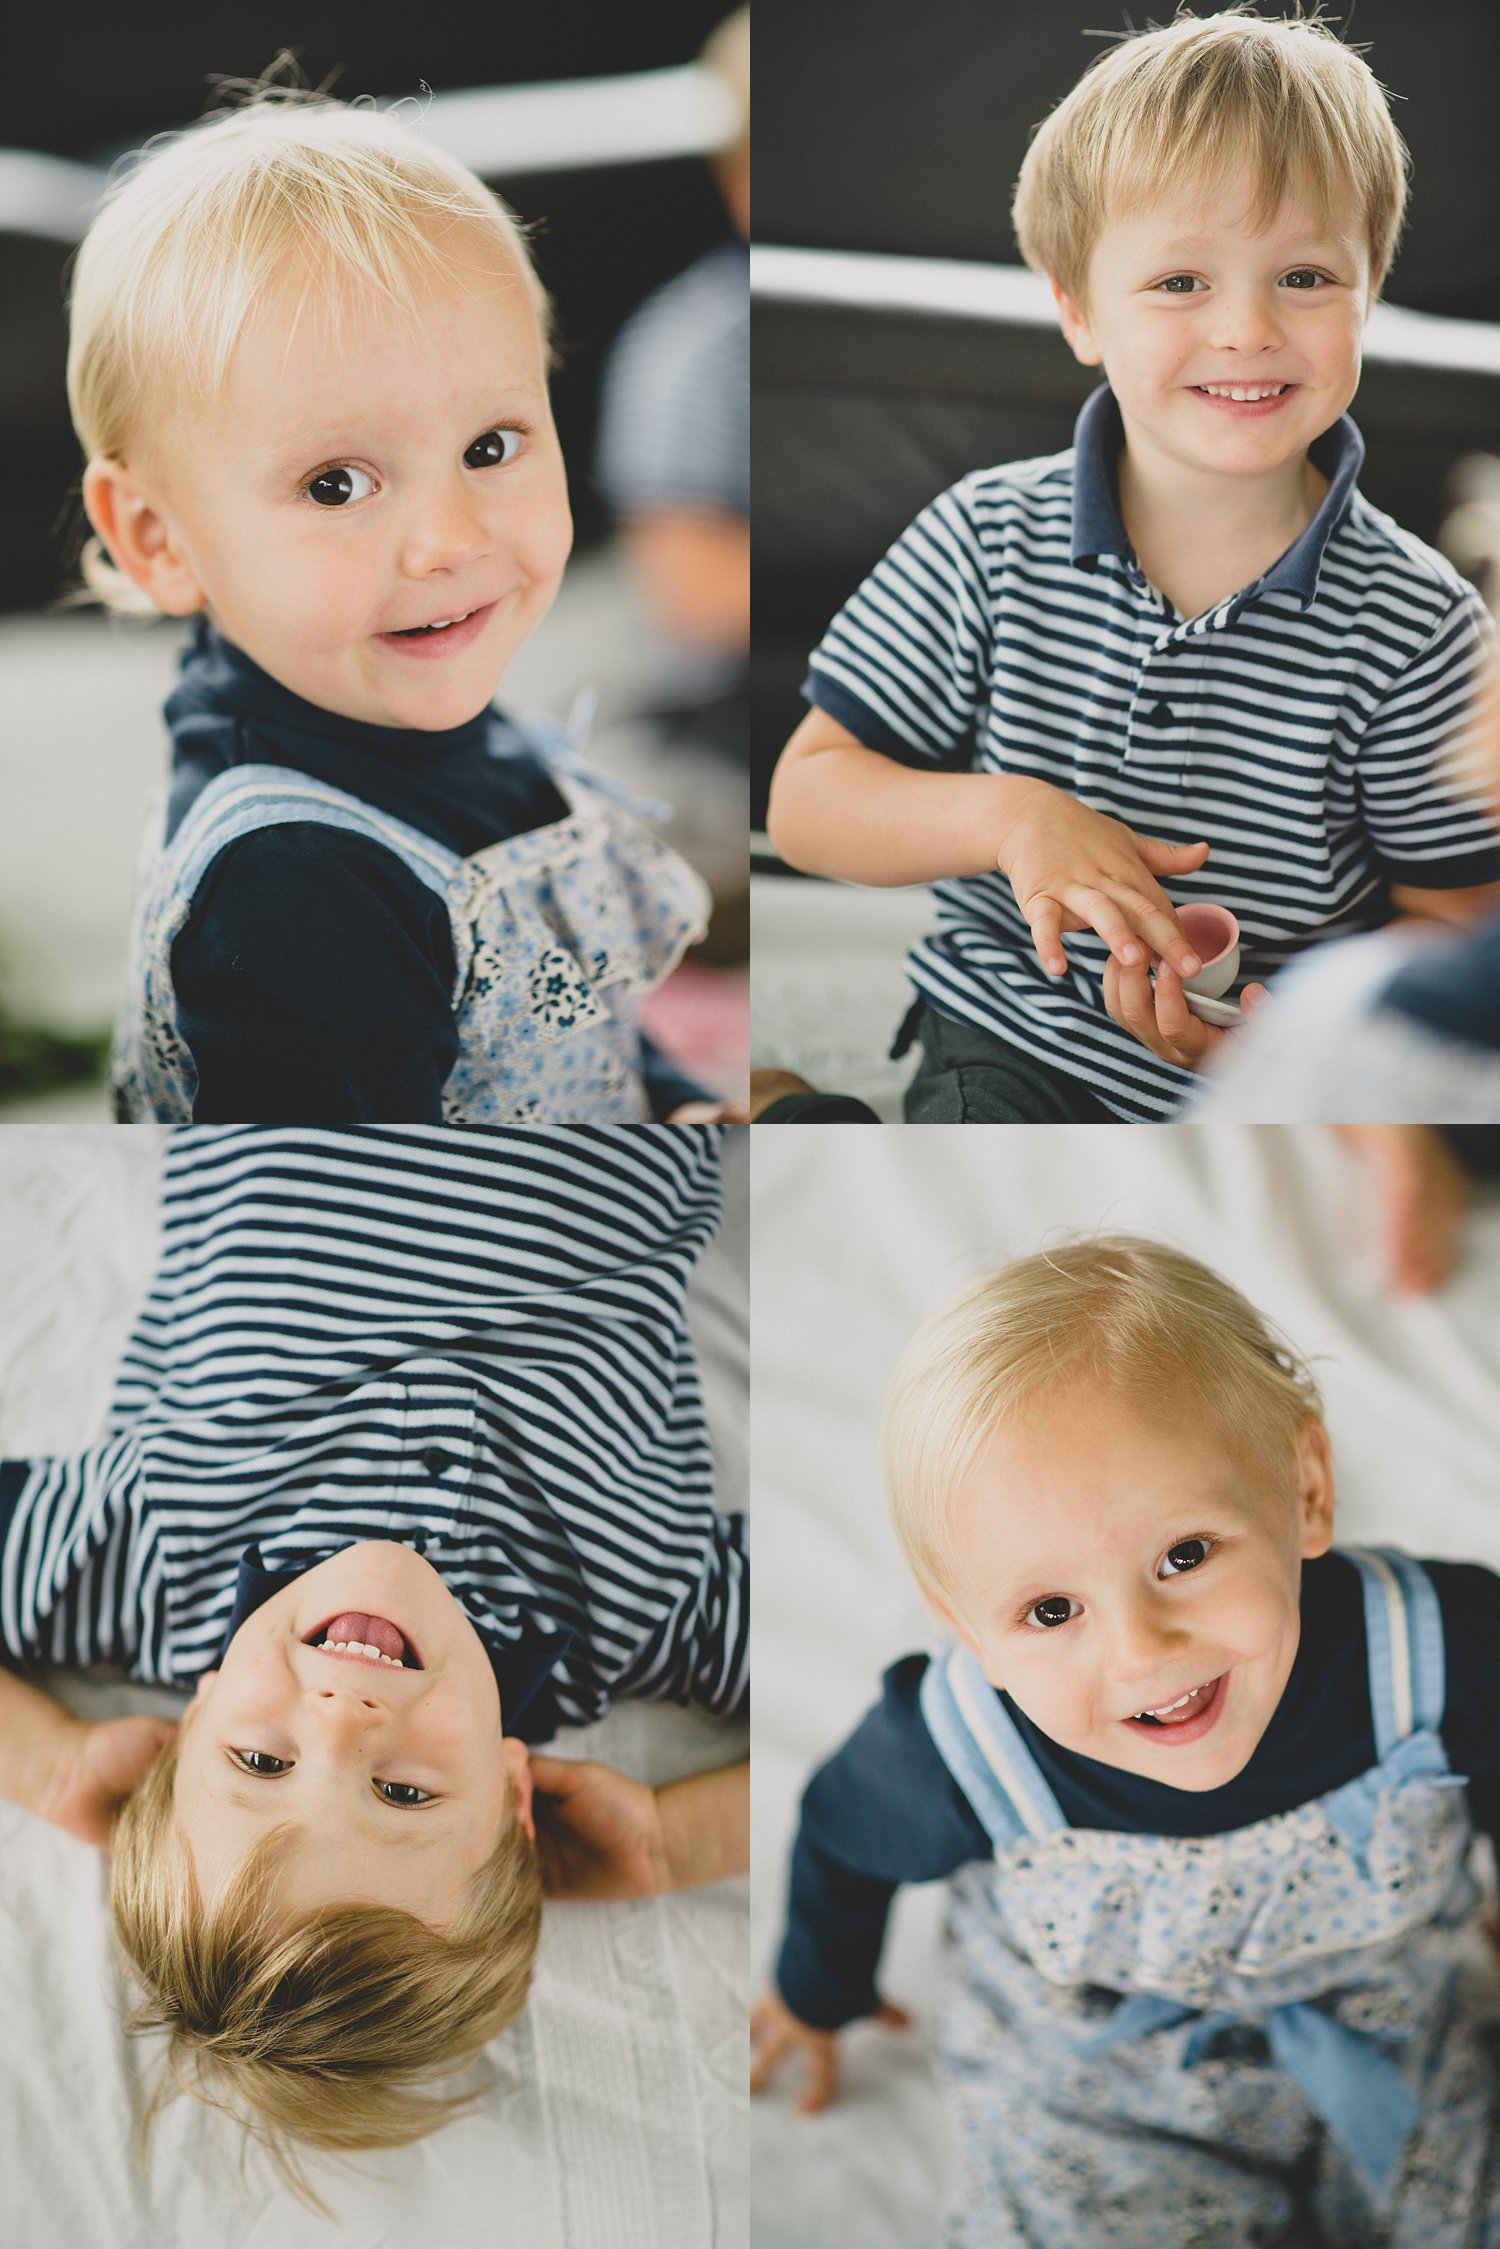 more face photos of kids - 5 Tips for Doing Lifestyle Photo Sessions